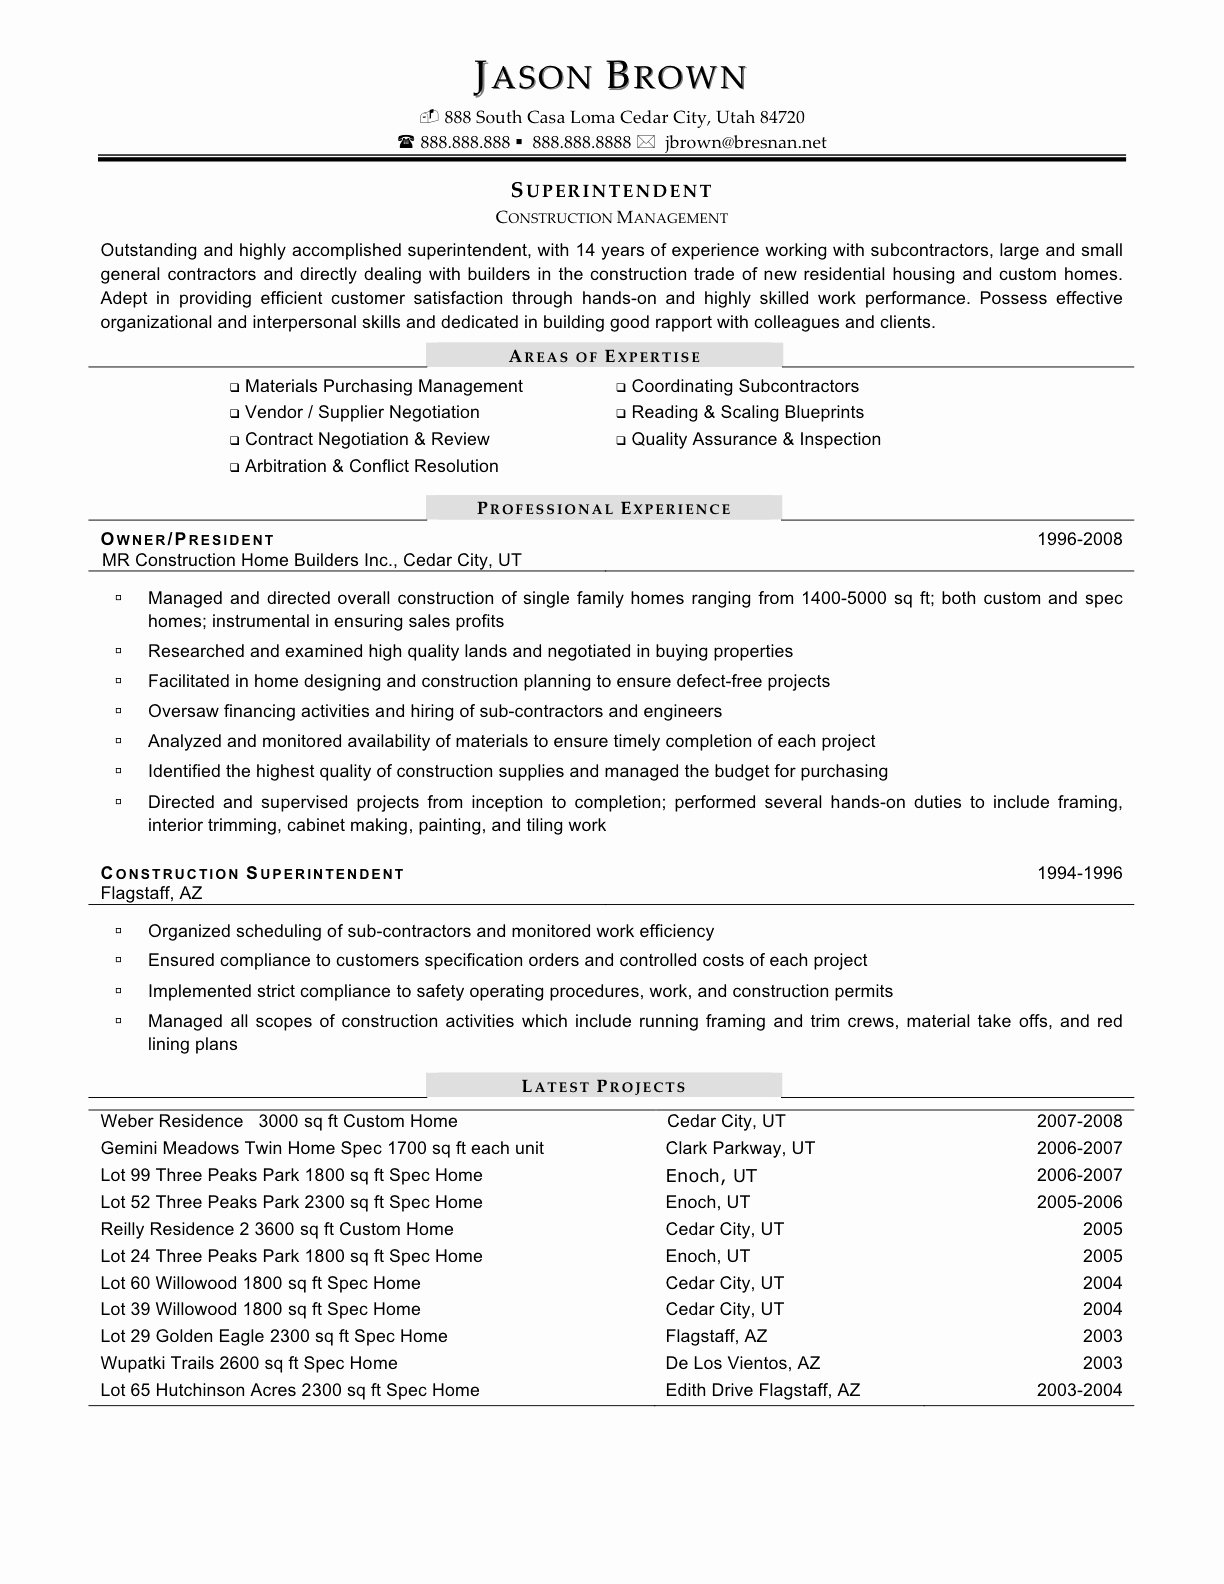 How to Write Example Summary Resume for Construction